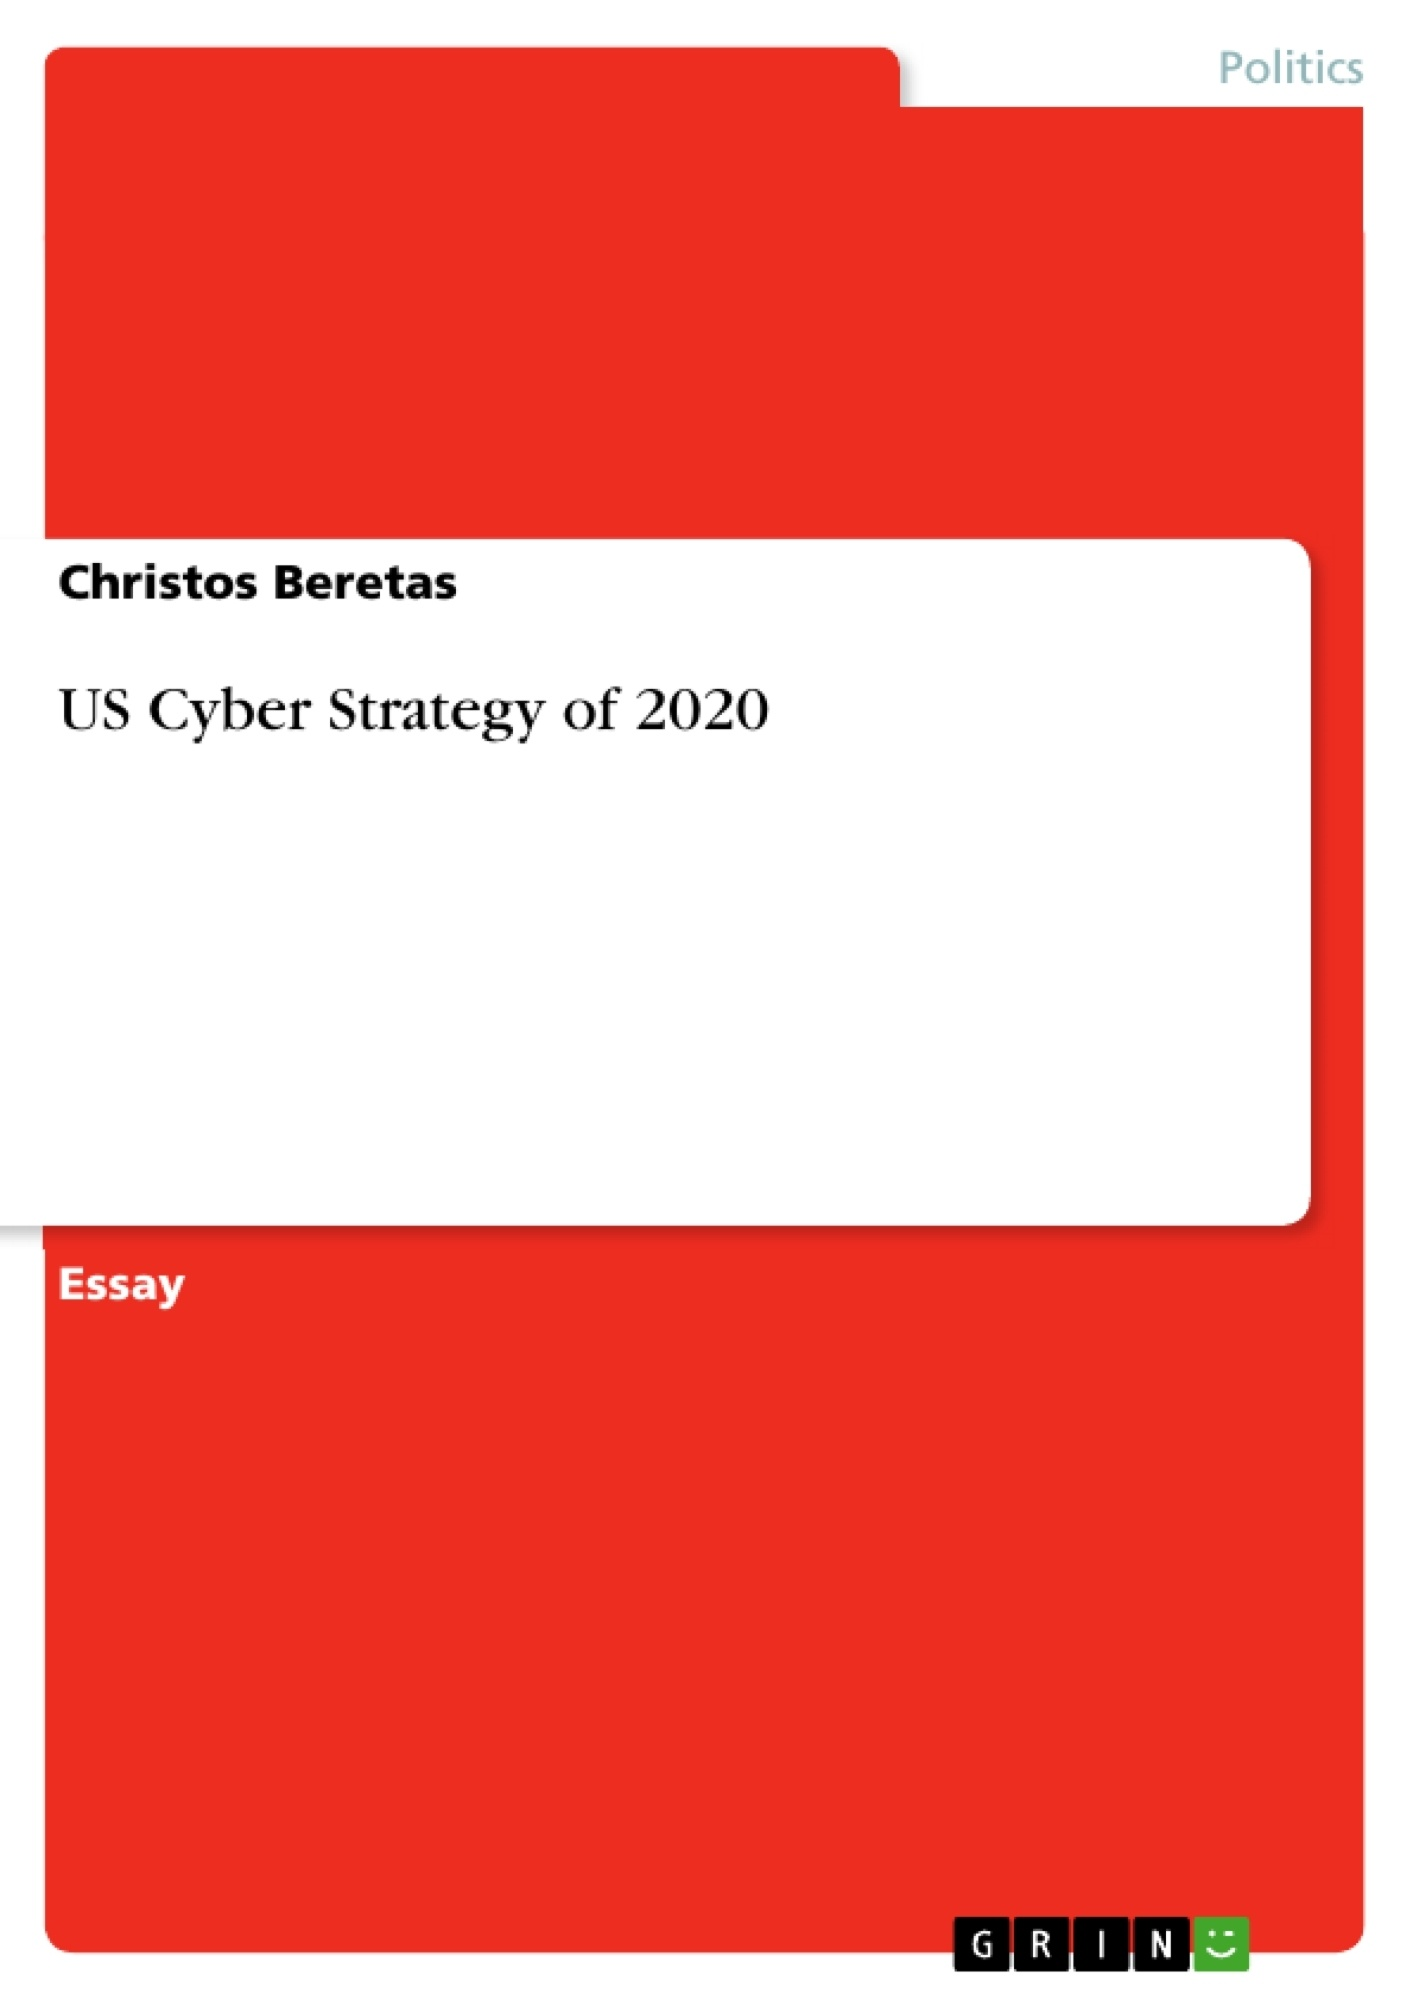 Title: US Cyber Strategy of 2020